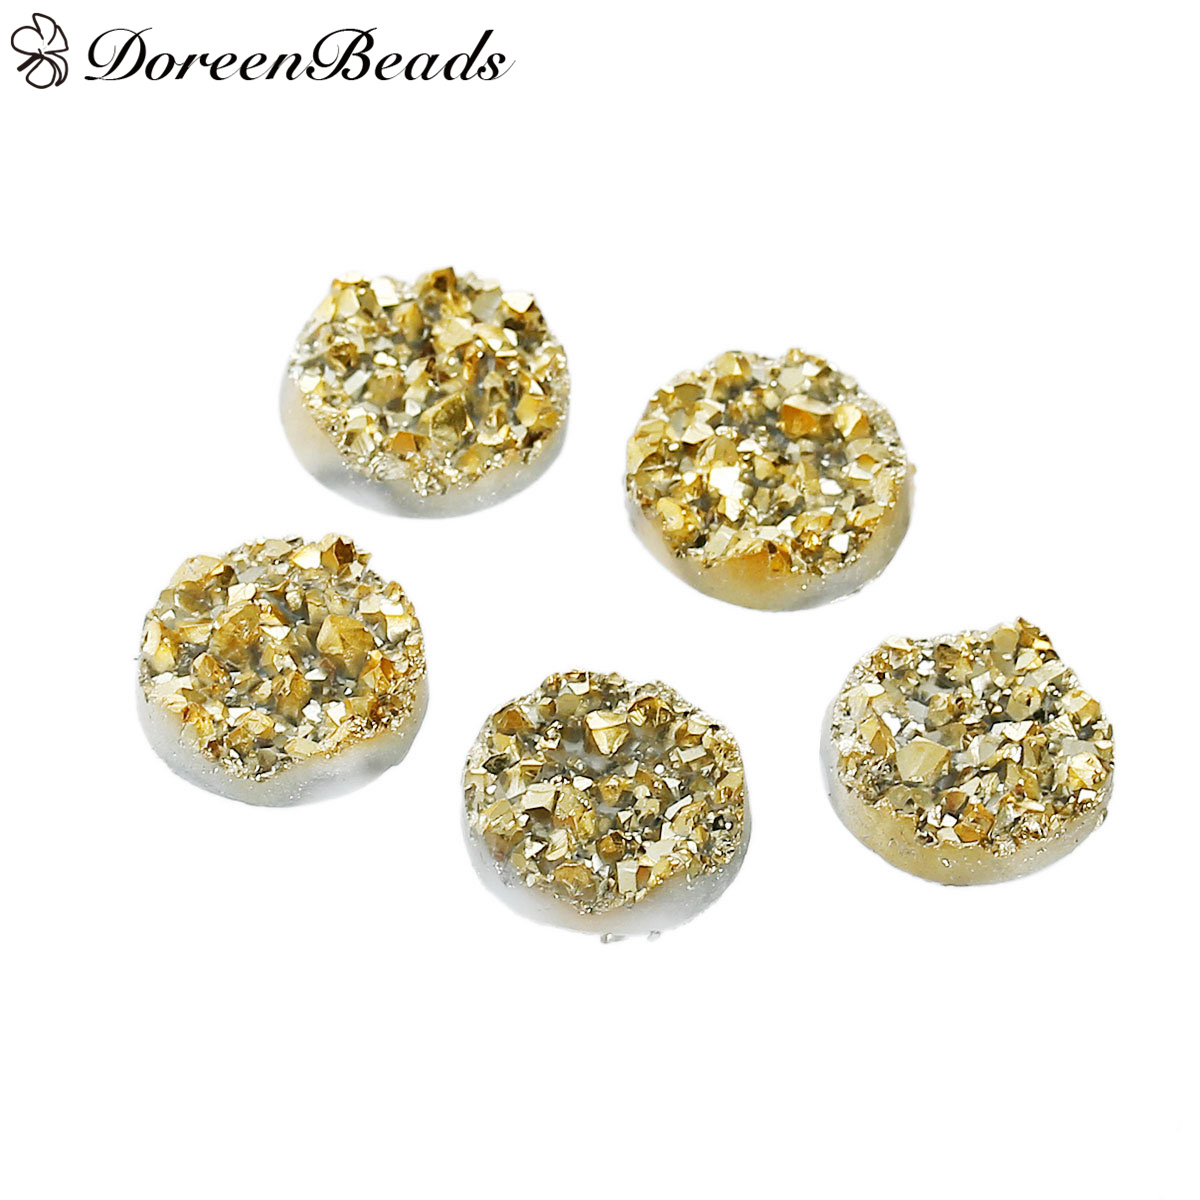 DoreenBeads Resin drusy Dome Seals Cabochon Round gold color 12mm( 4/8) Dia, 50 PCs image